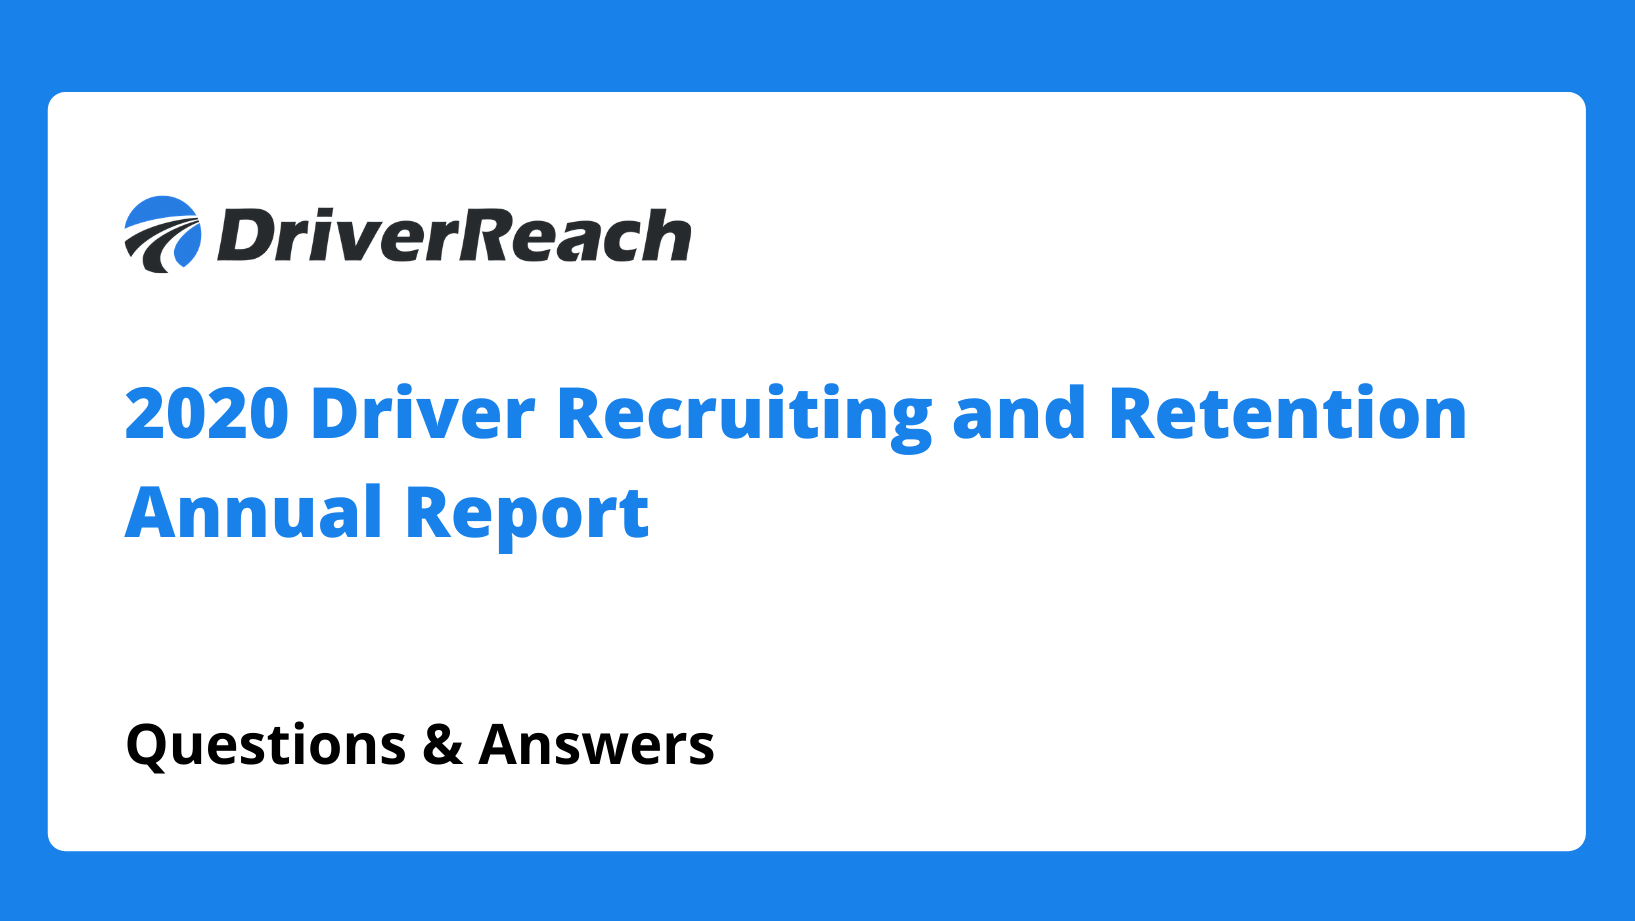 Webinar Q&A: 2020 Recruiting and Retention Annual Report